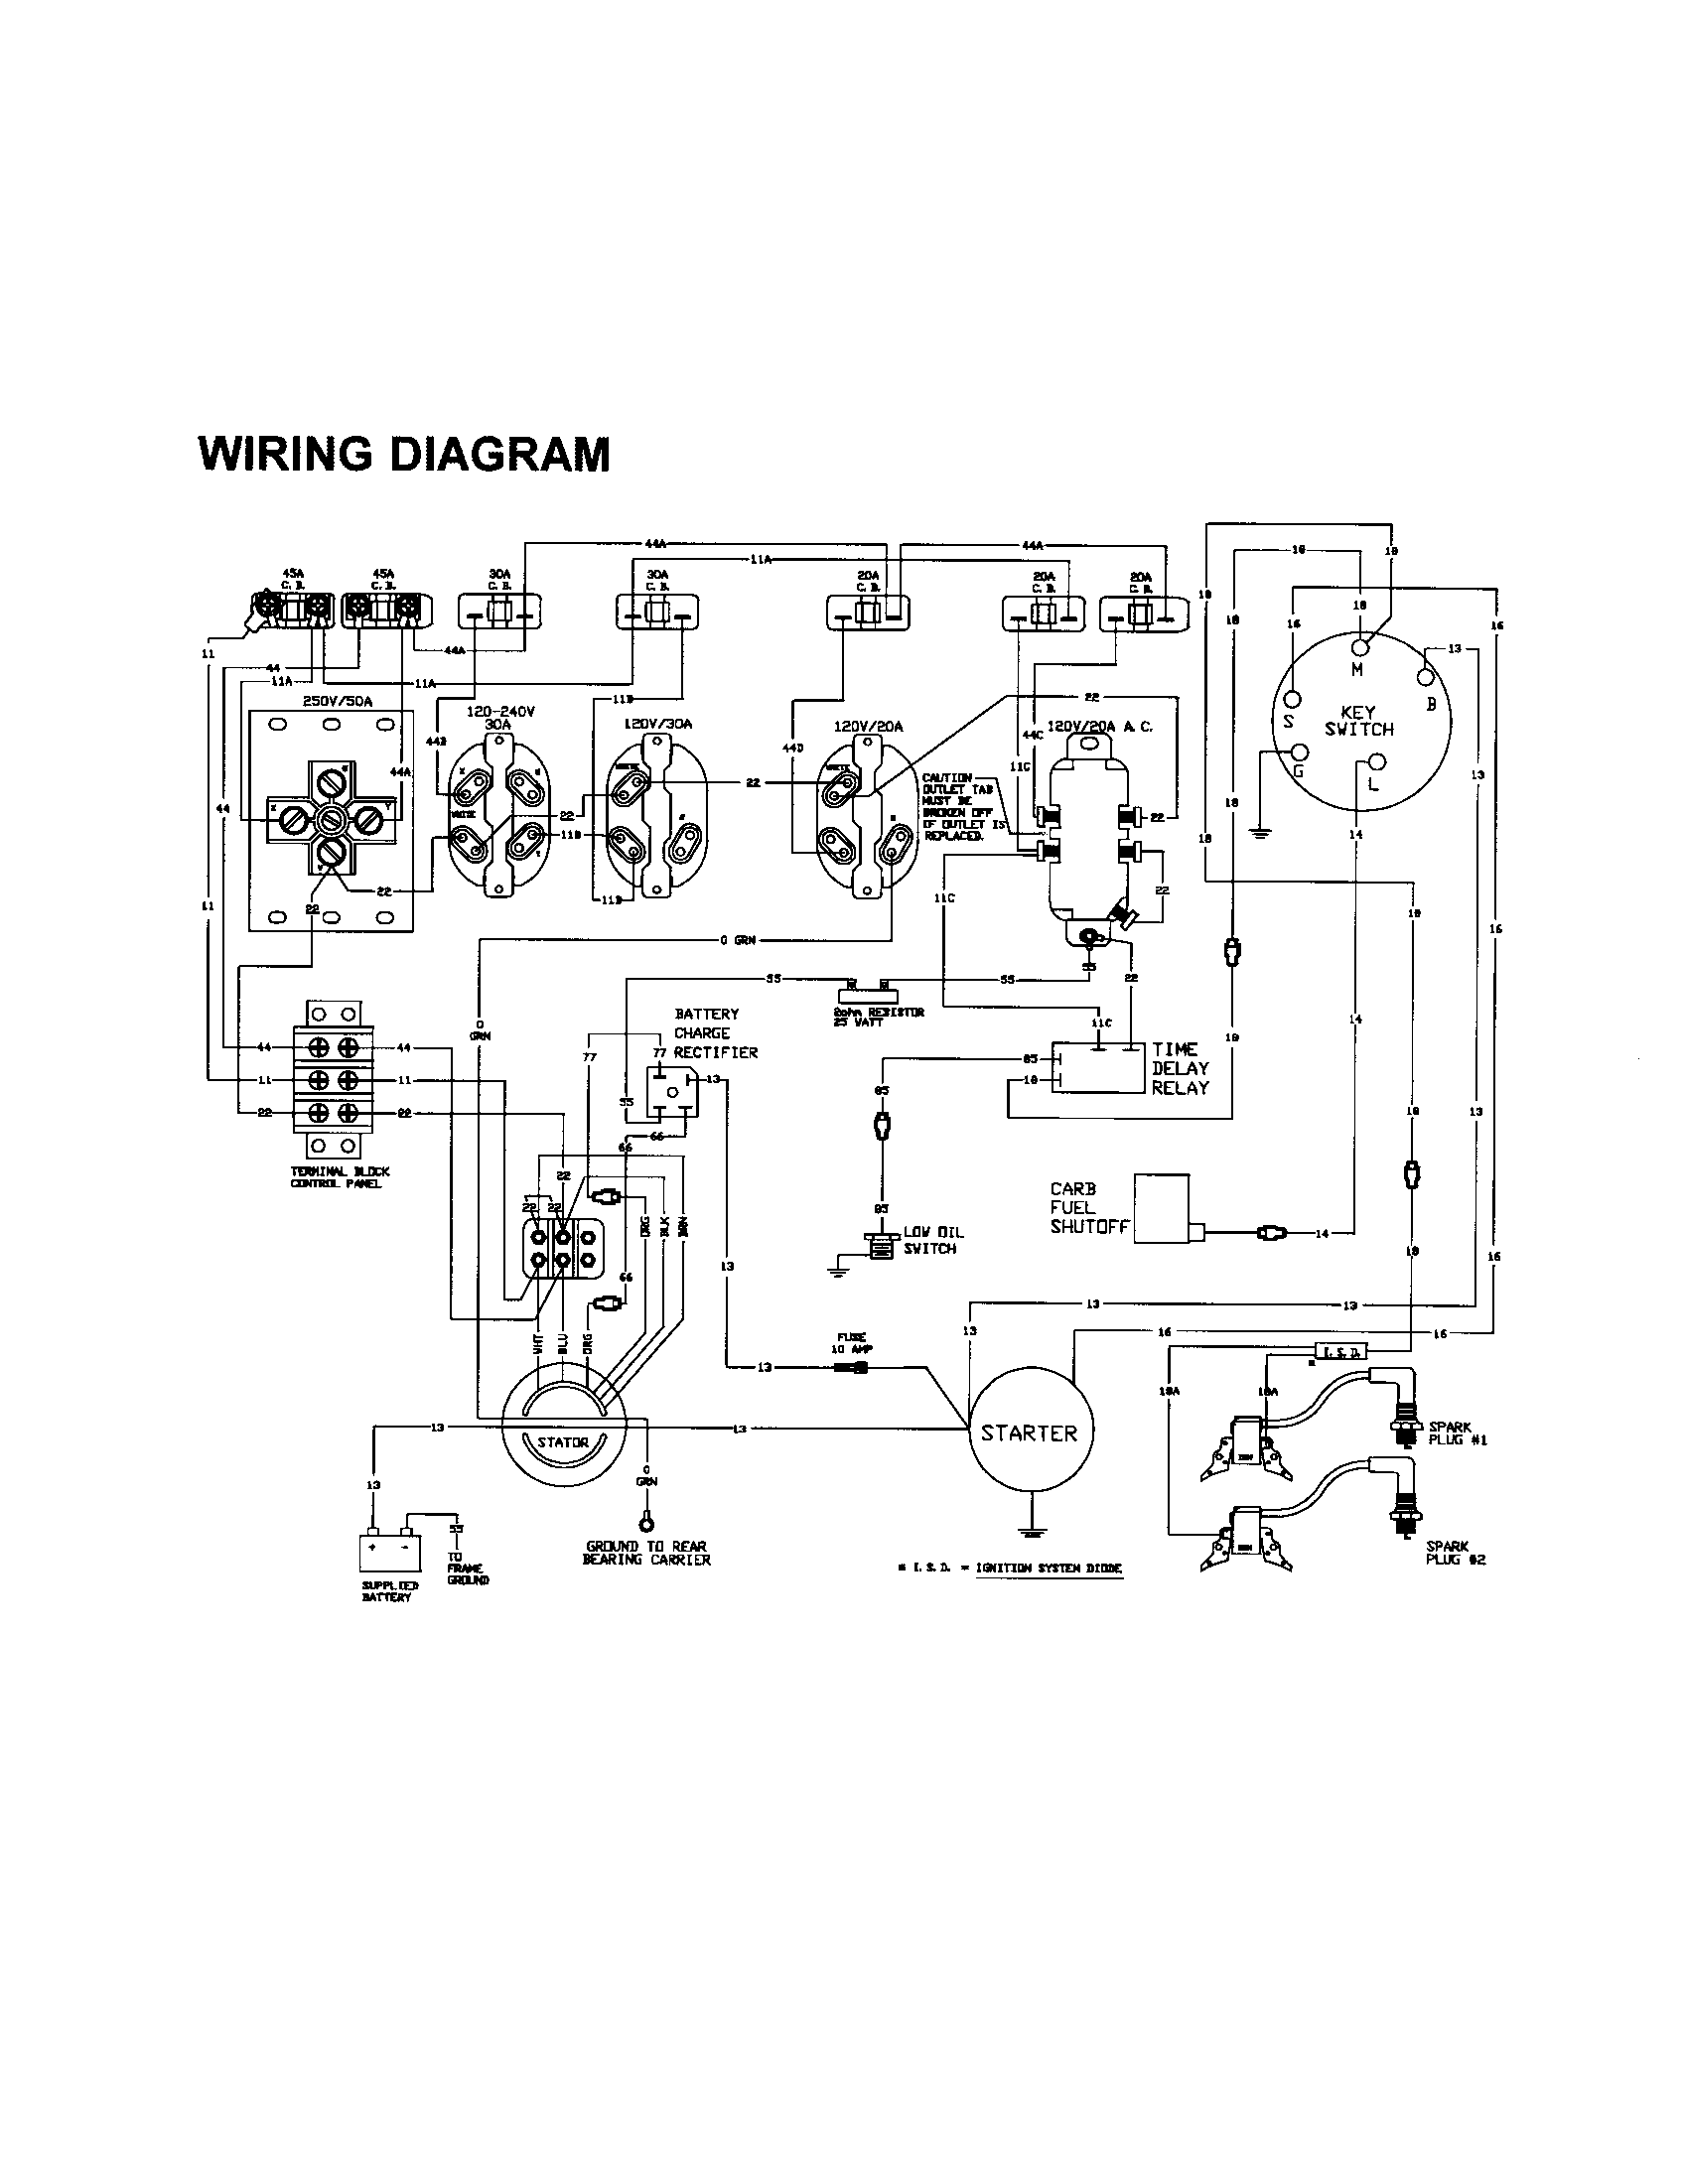 Wiring Diagram For 20kw Generac Generator